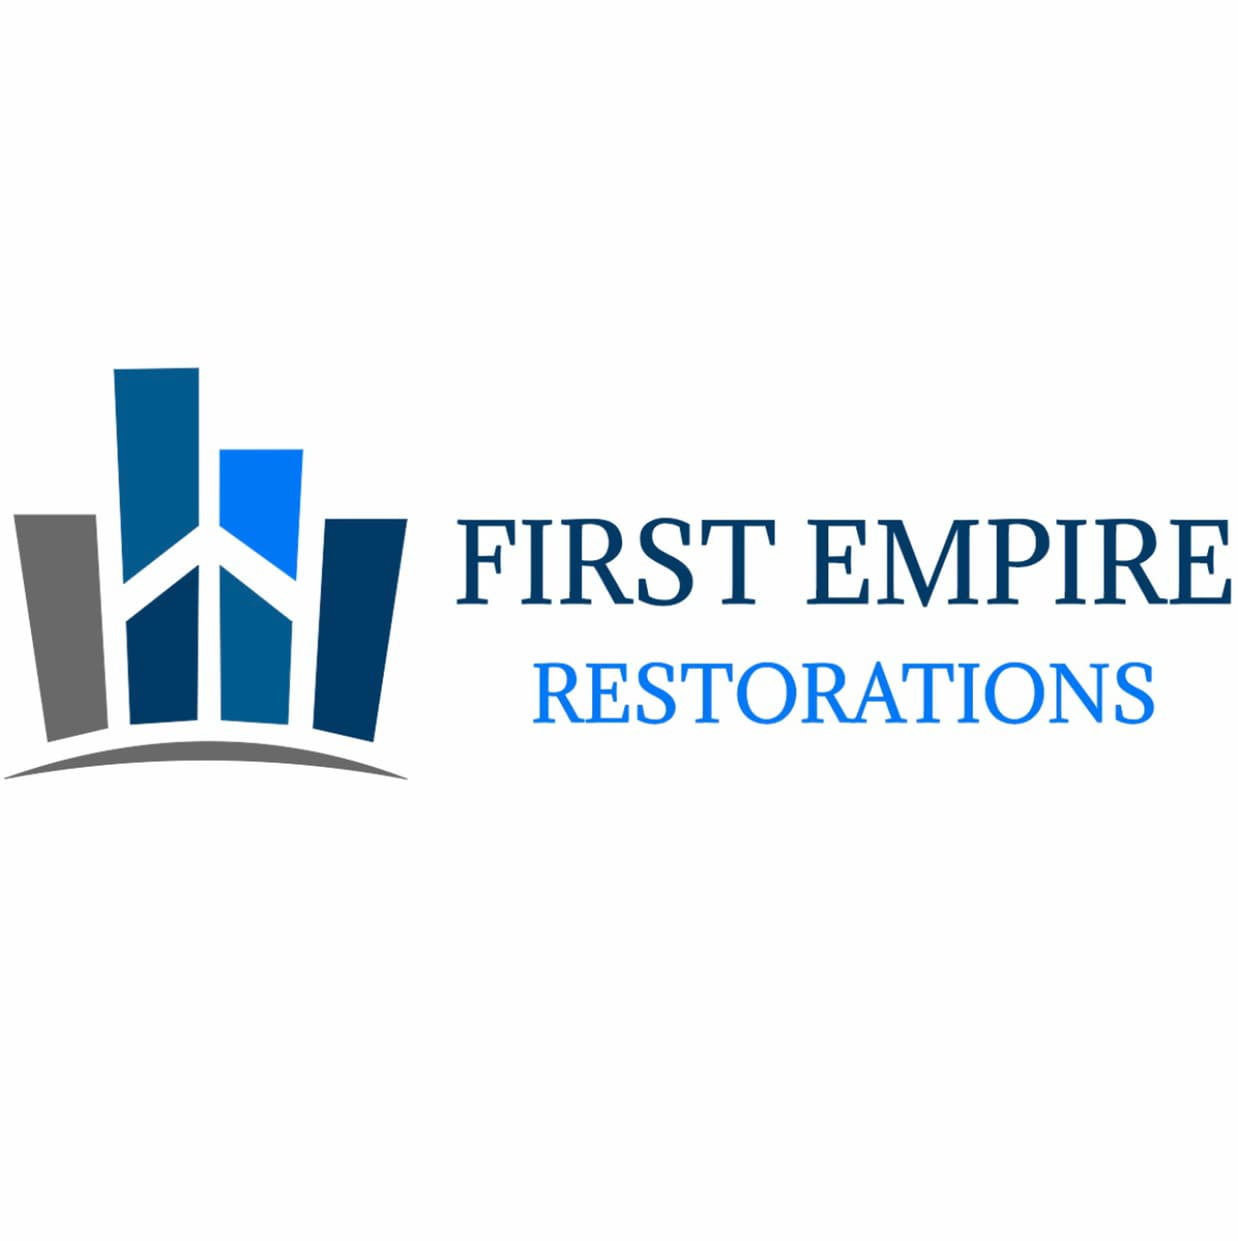 First Empire Restorations LLC